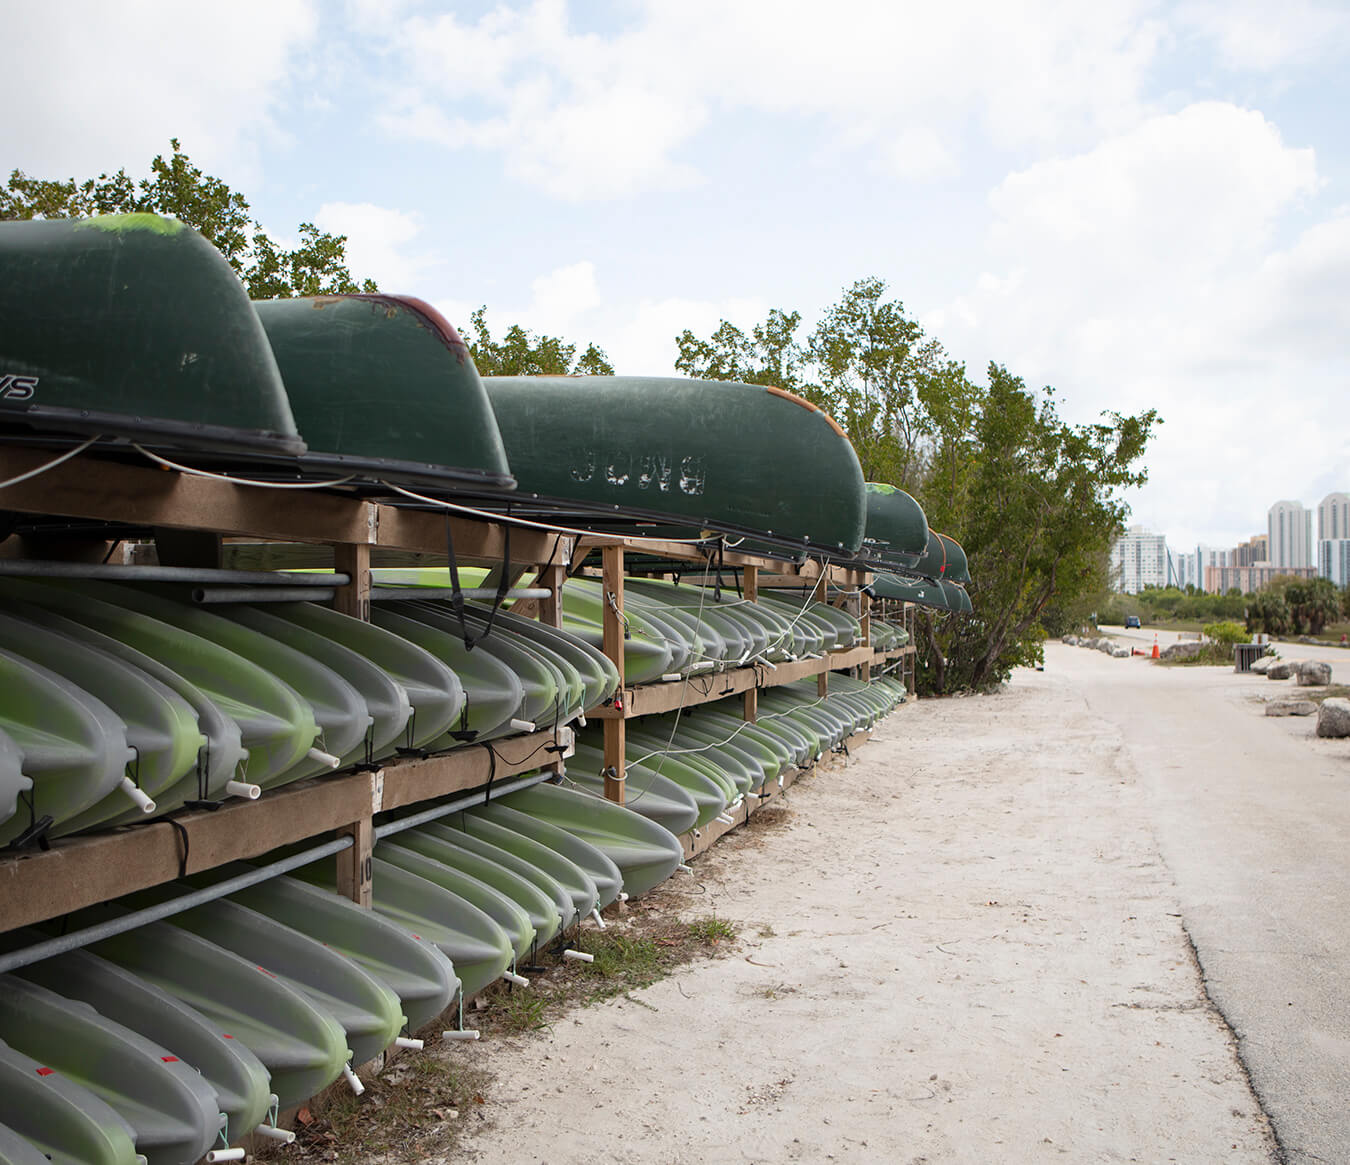 Things to Do in Miami - Oleta River State Park